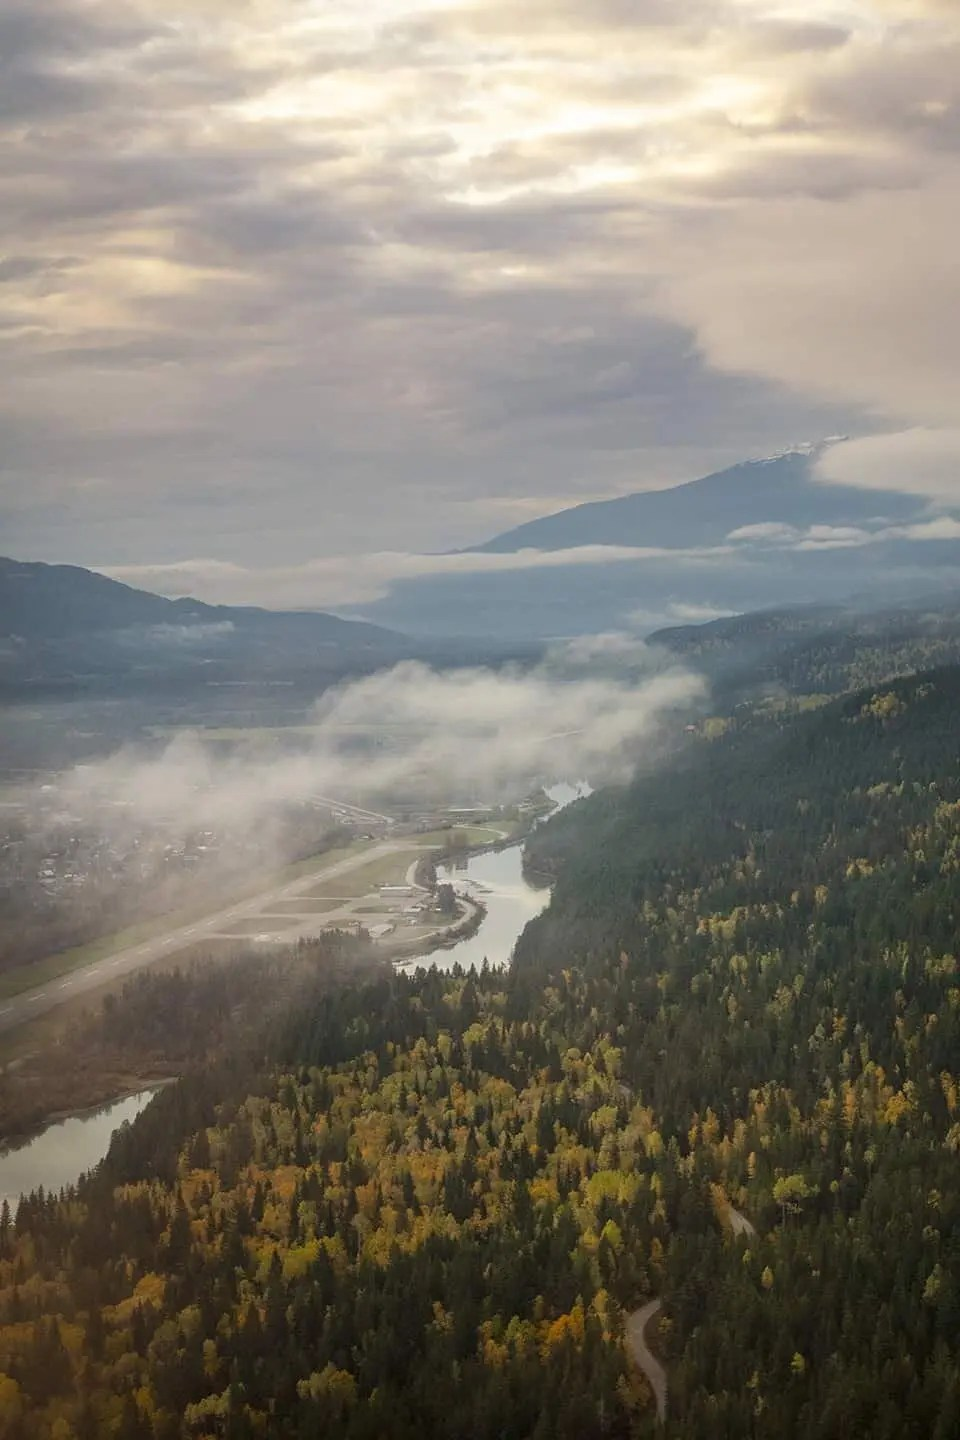 Golden, British Columbia - A Travel guide for photographers to the Kootenay Rockies of Canada.